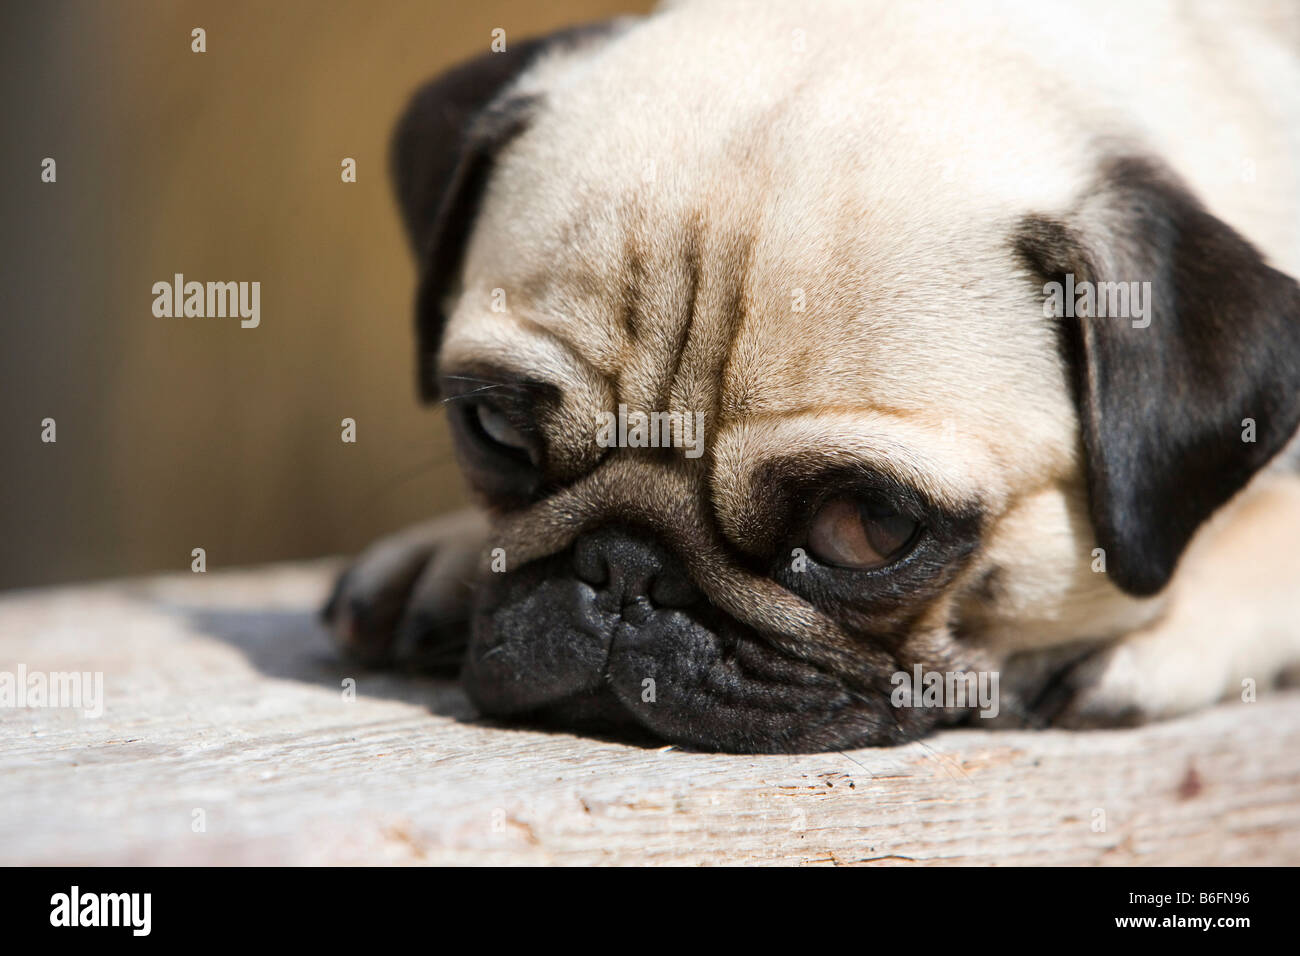 Young pug lying on a wooden bench - Stock Image